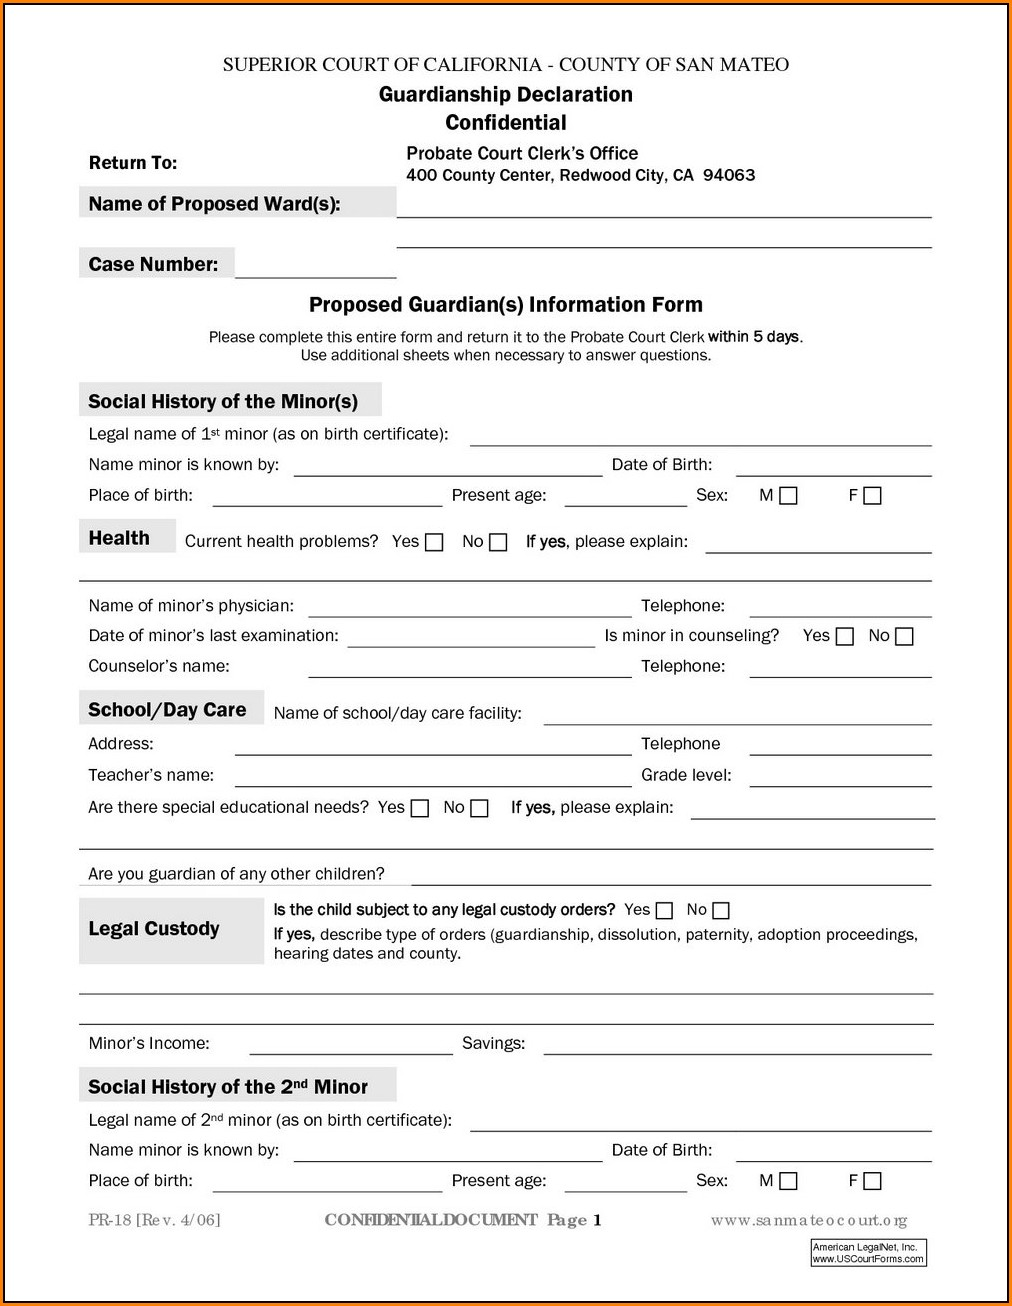 Indiana Temporary Guardianship Form